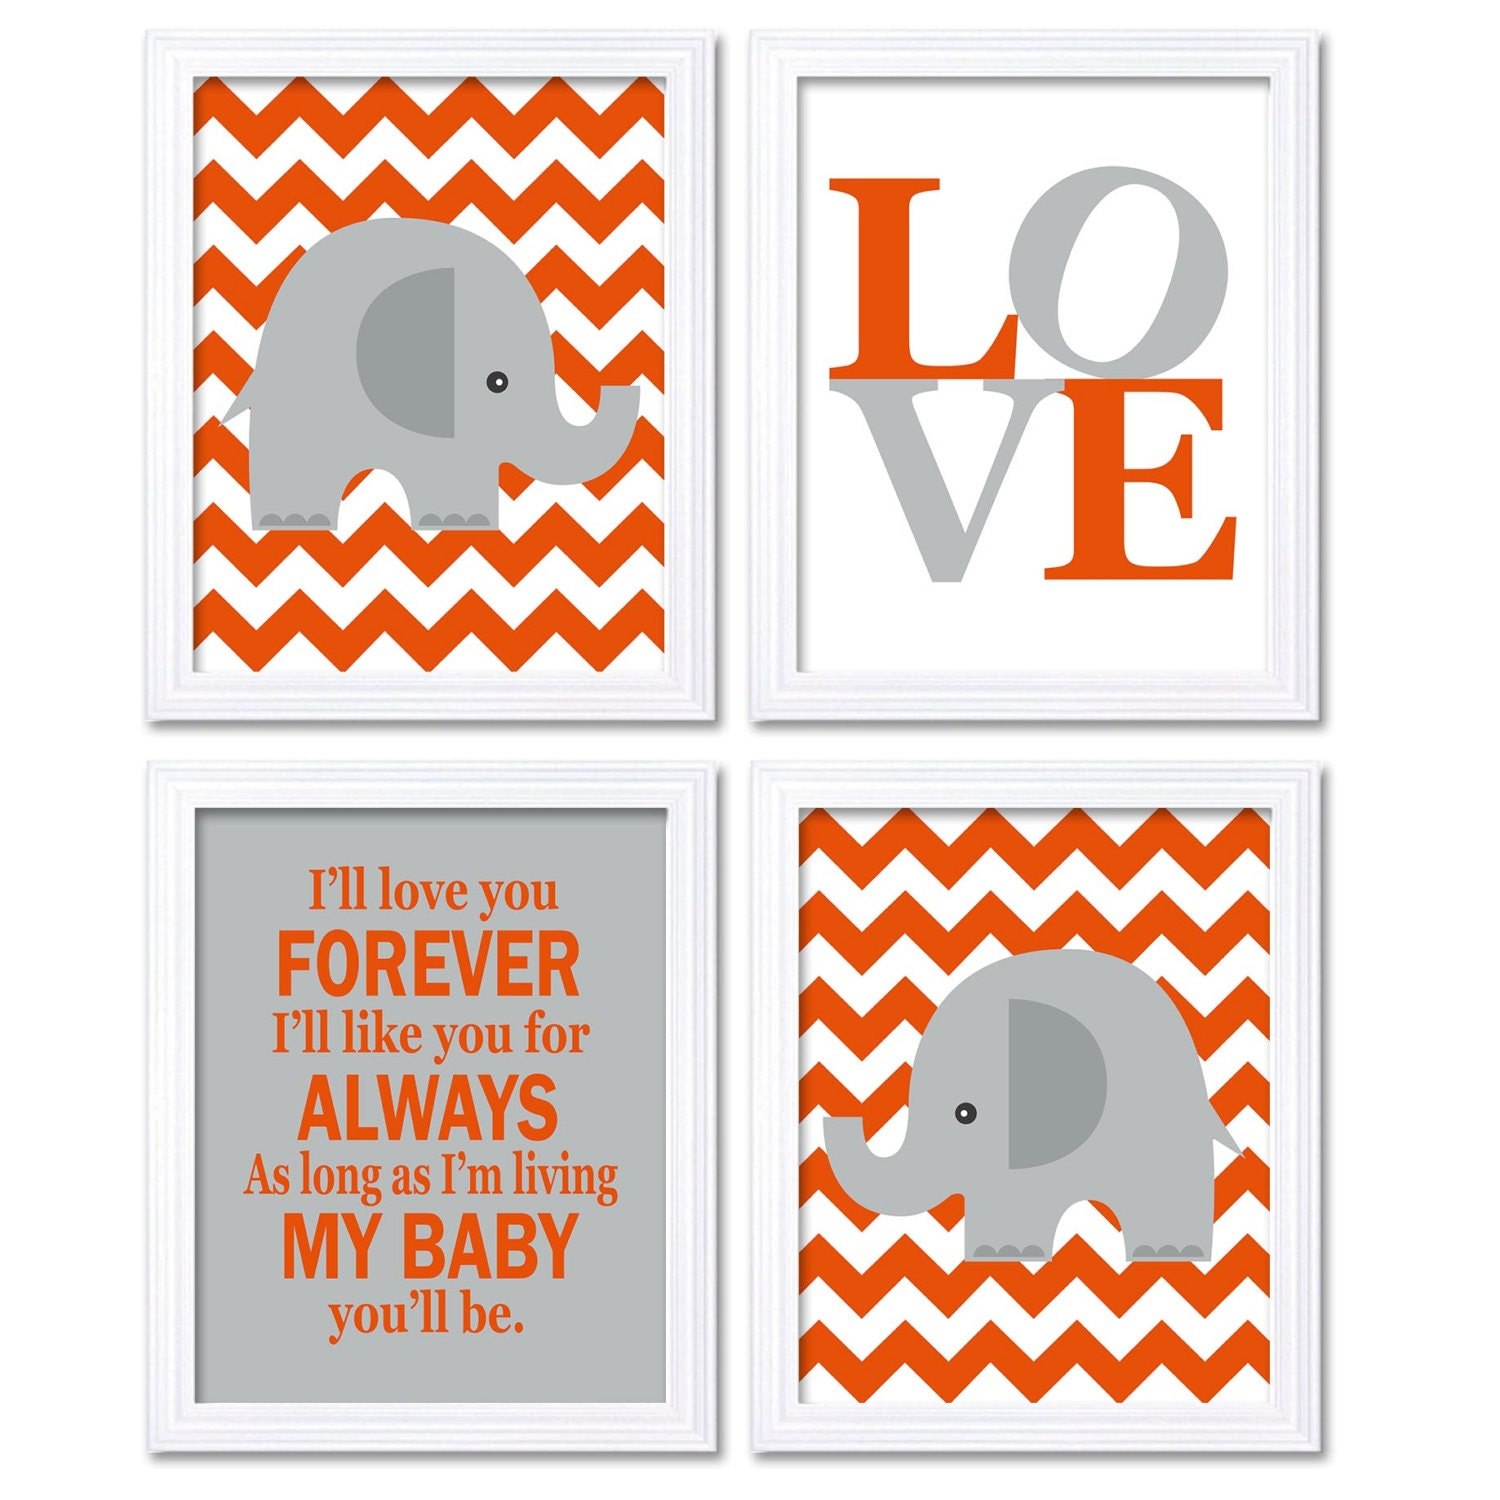 Elephant Nursery Art Giraffe Wall Decor Ill Love You Forever Set of 4 Prints Orange Grey Child Kids